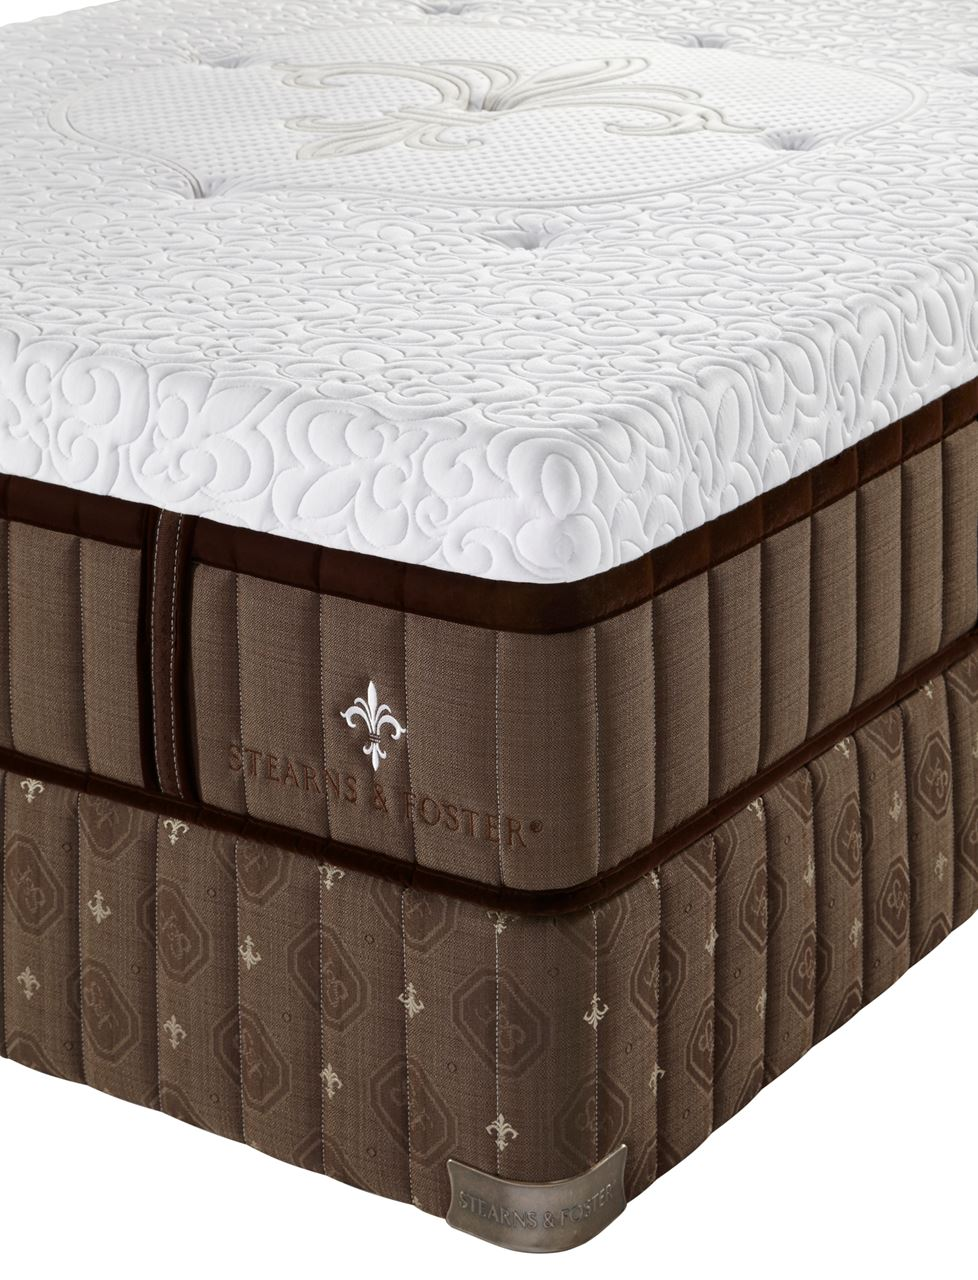 Stearns Amp Foster Lux Estate Lakelet 2016 Firm Mattress